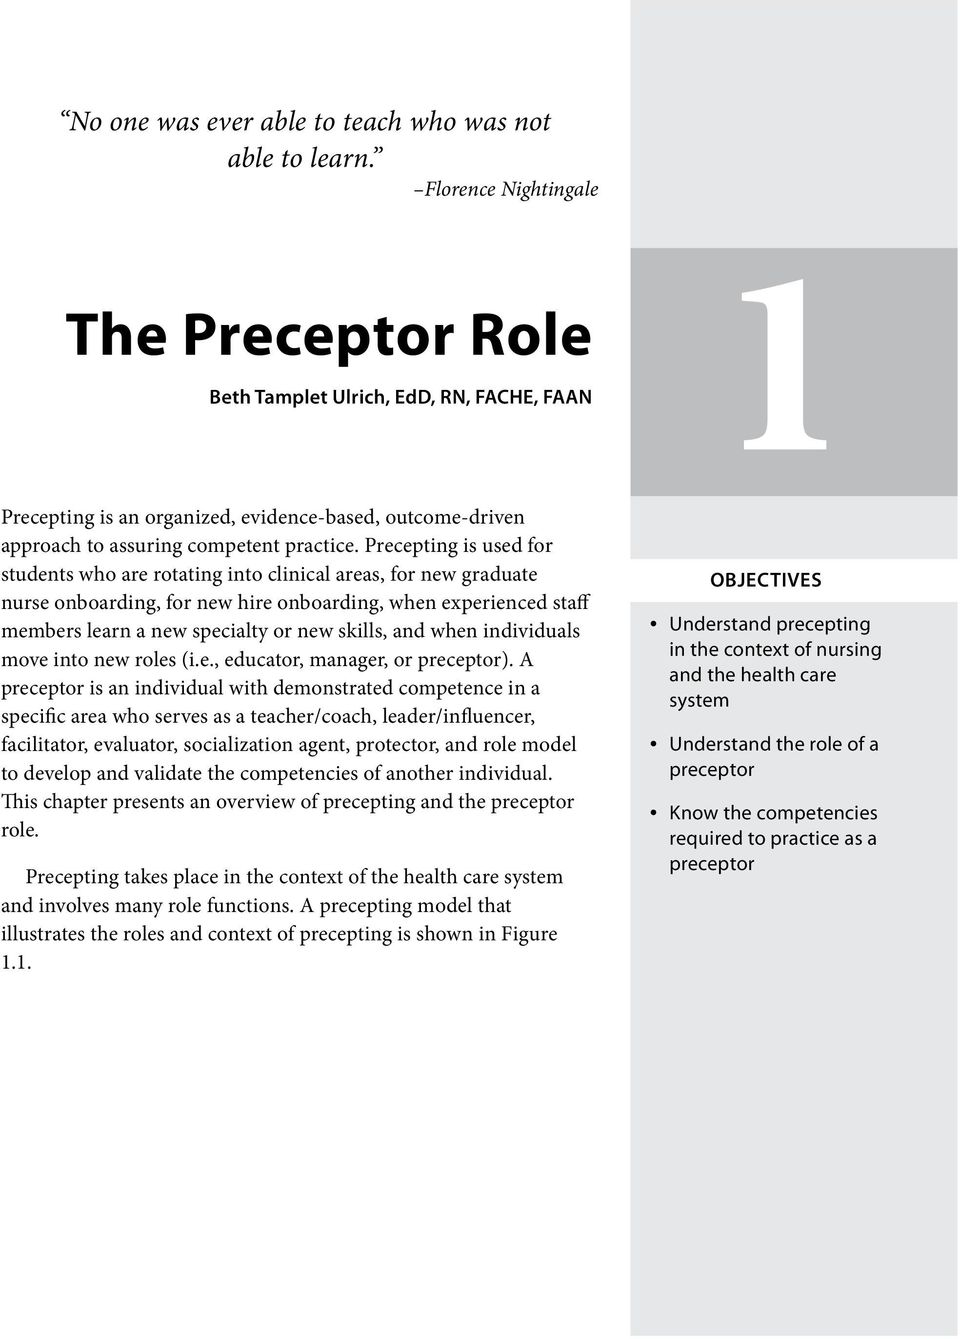 Precepting is used for students who are rotating into clinical areas, for new graduate nurse onboarding, for new hire onboarding, when experienced staff members learn a new specialty or new skills,